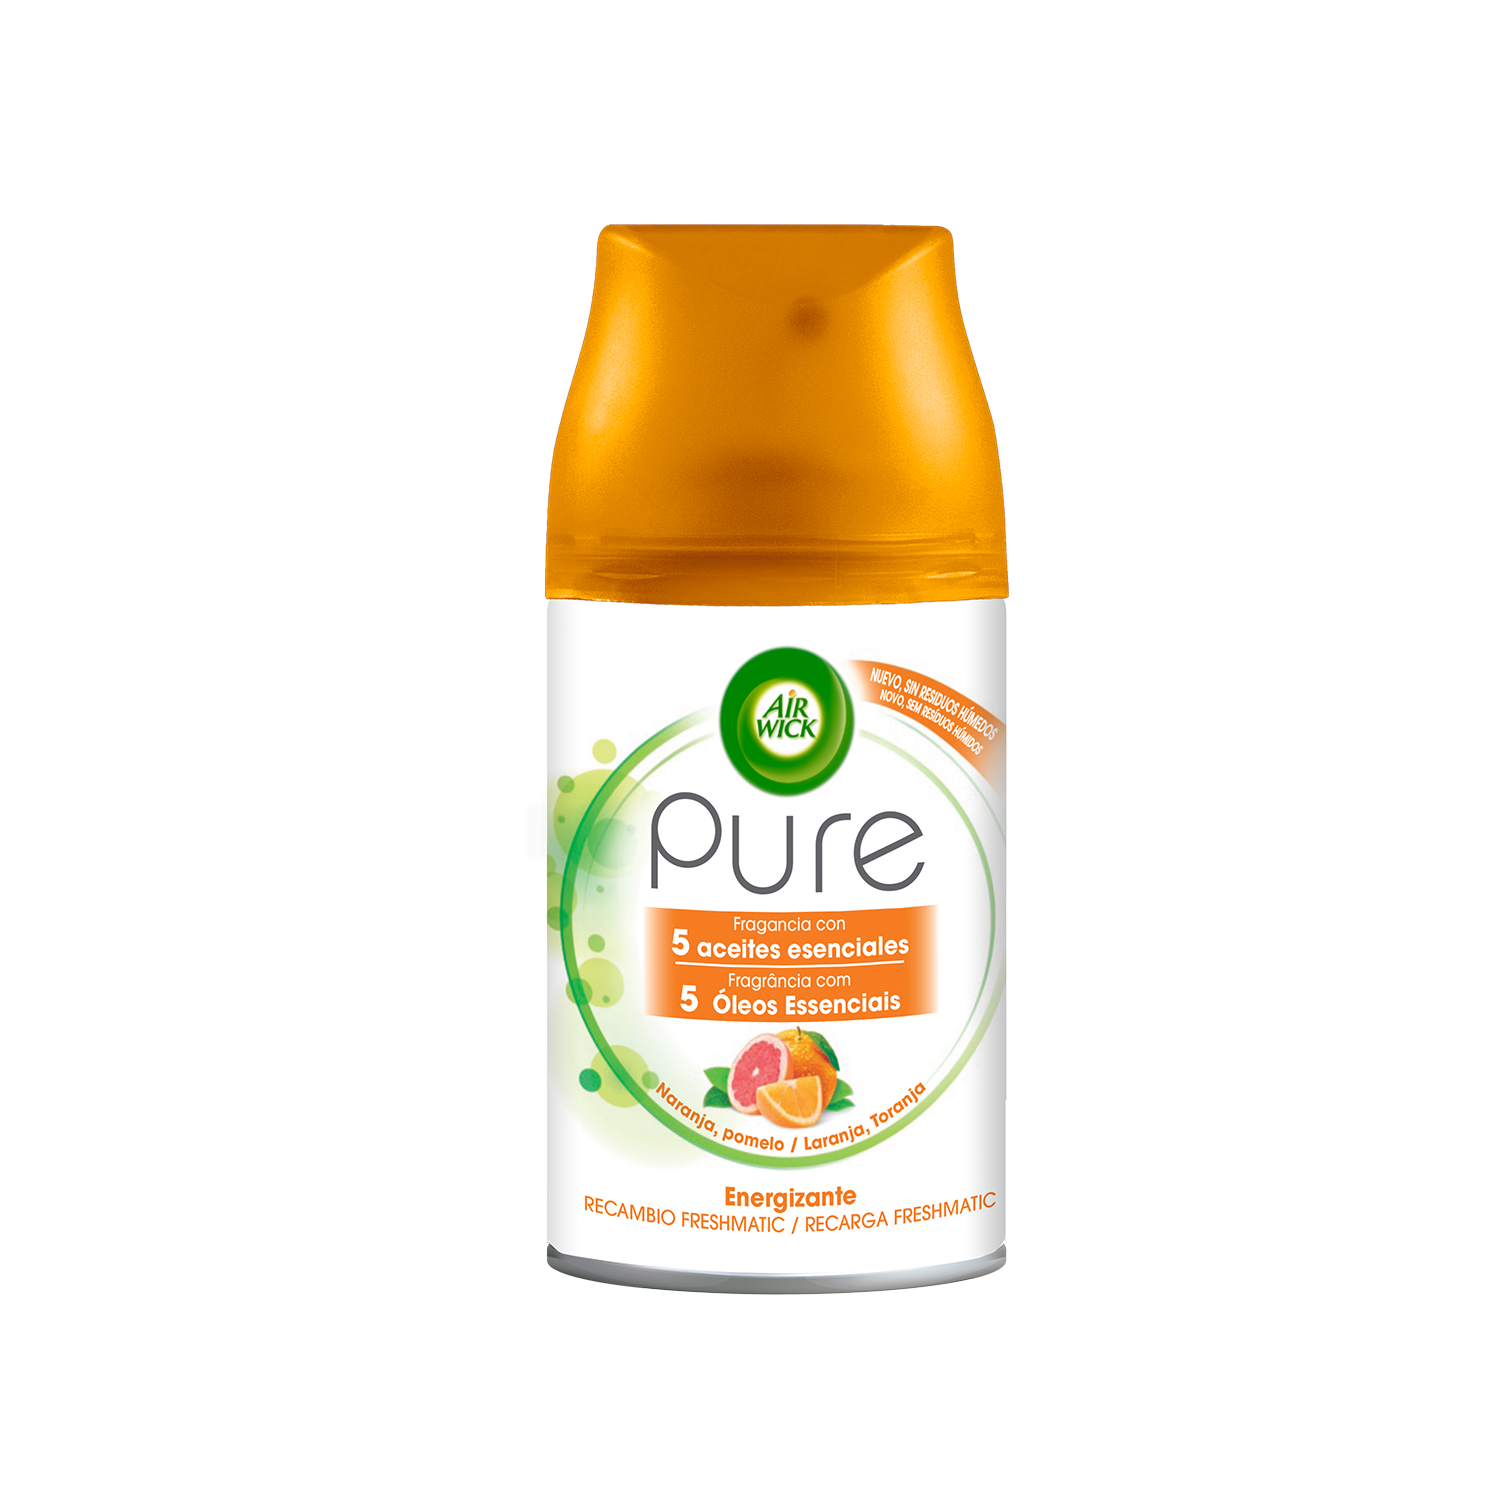 Air Wick recambio fresh matic pure relajante naranja de 25cl.